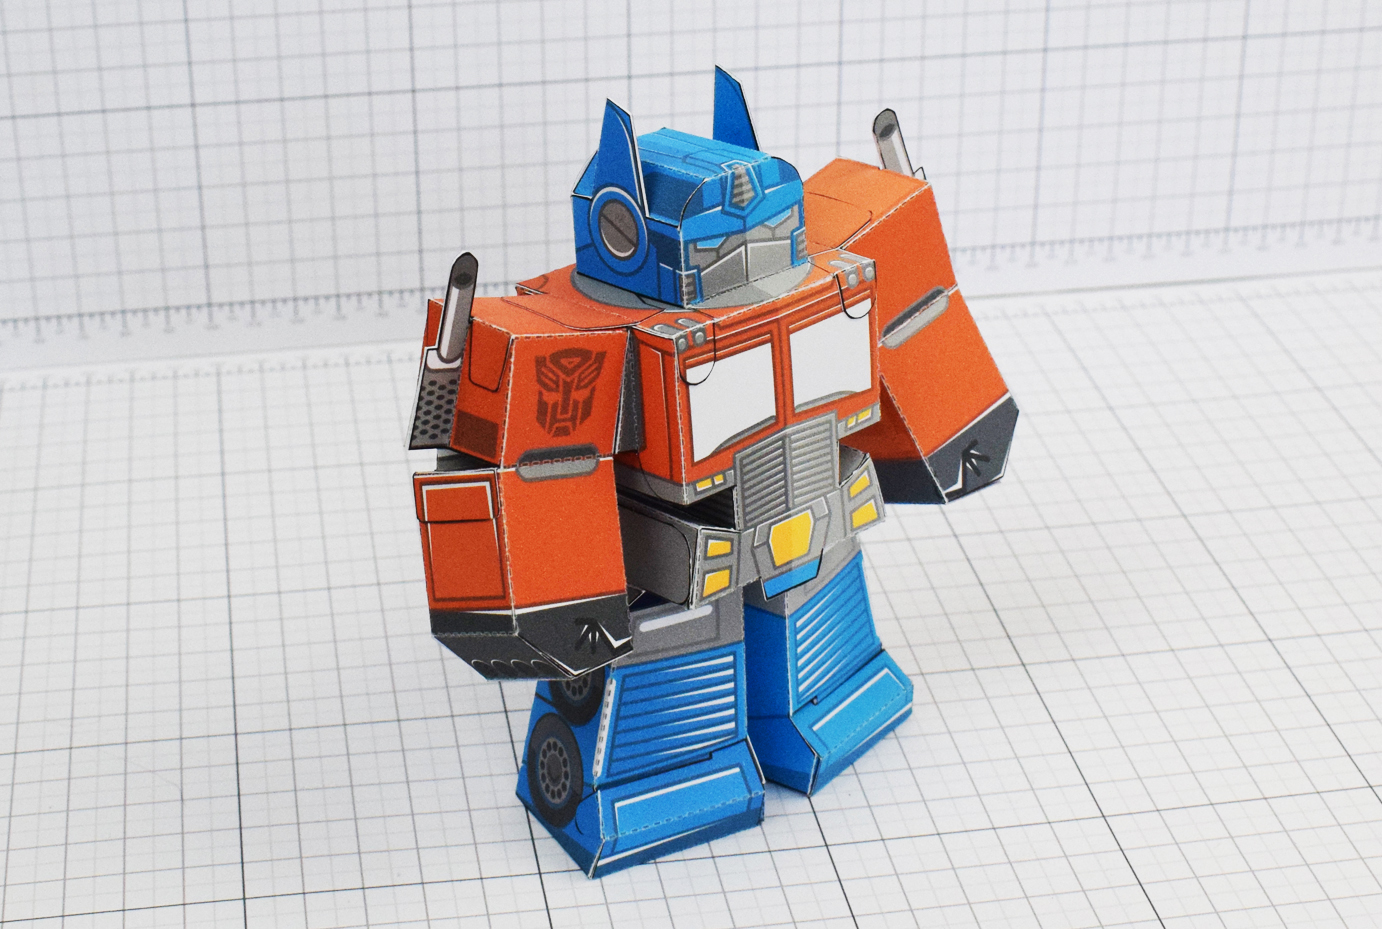 PTI Optimus Prime Transformers Urban Paper Toy Image Main 2